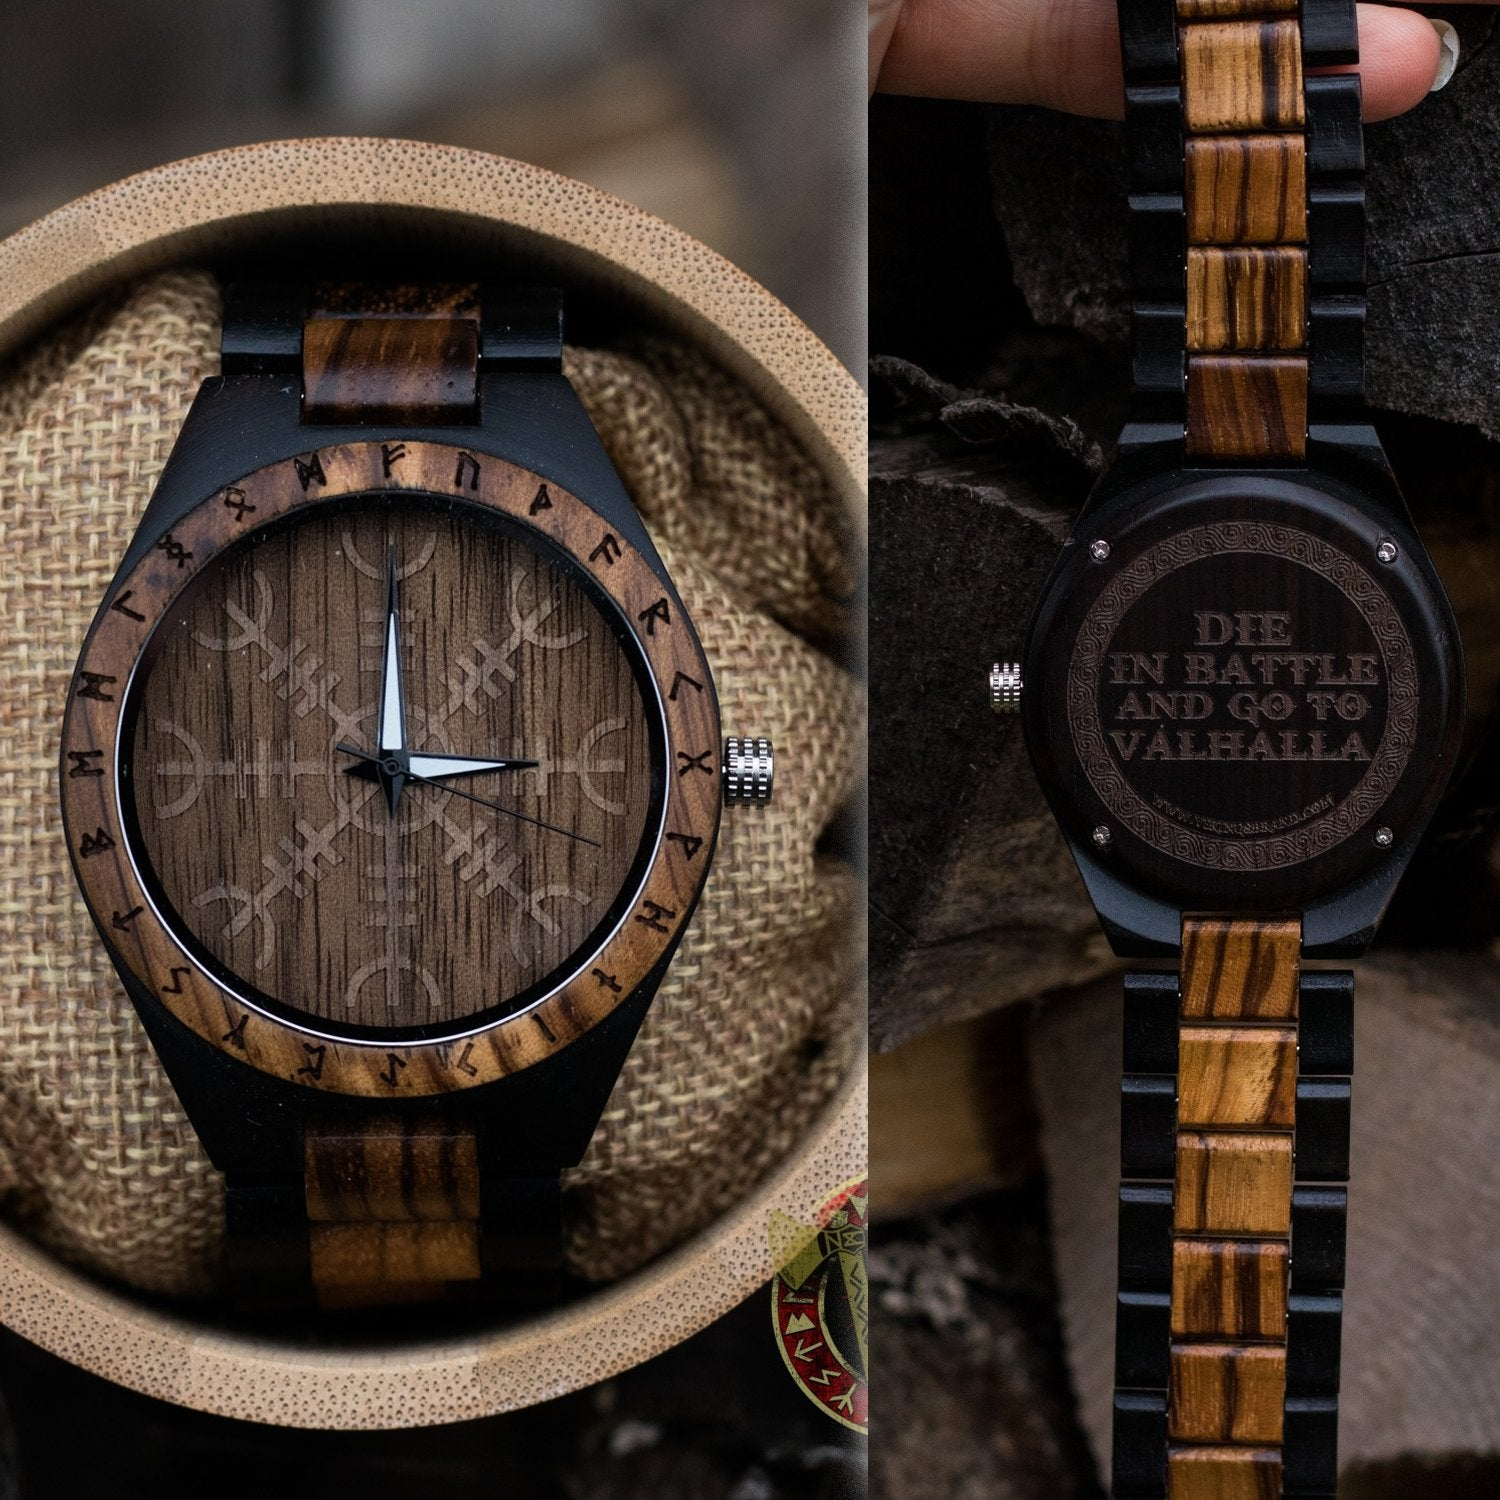 Handmade Ivar Wooden Viking Watch with Helm of Awe and Runic Circle, Unisex, Includes Customizable Engraved Quote or Name front and back